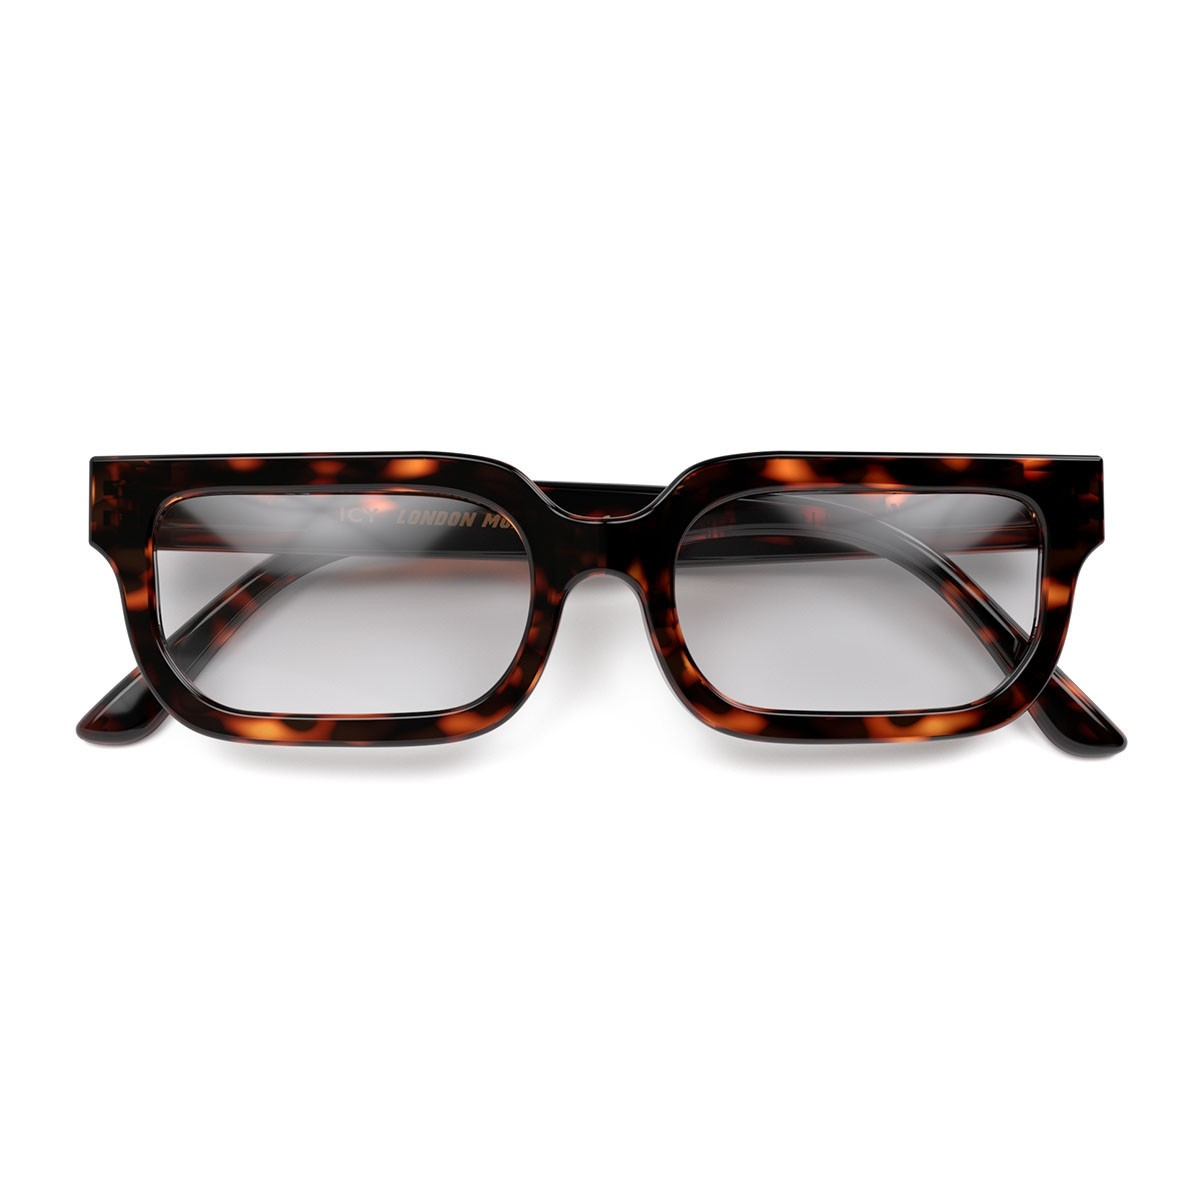 London Mole Icy Blue Blocker Glasses Tortoise Shell